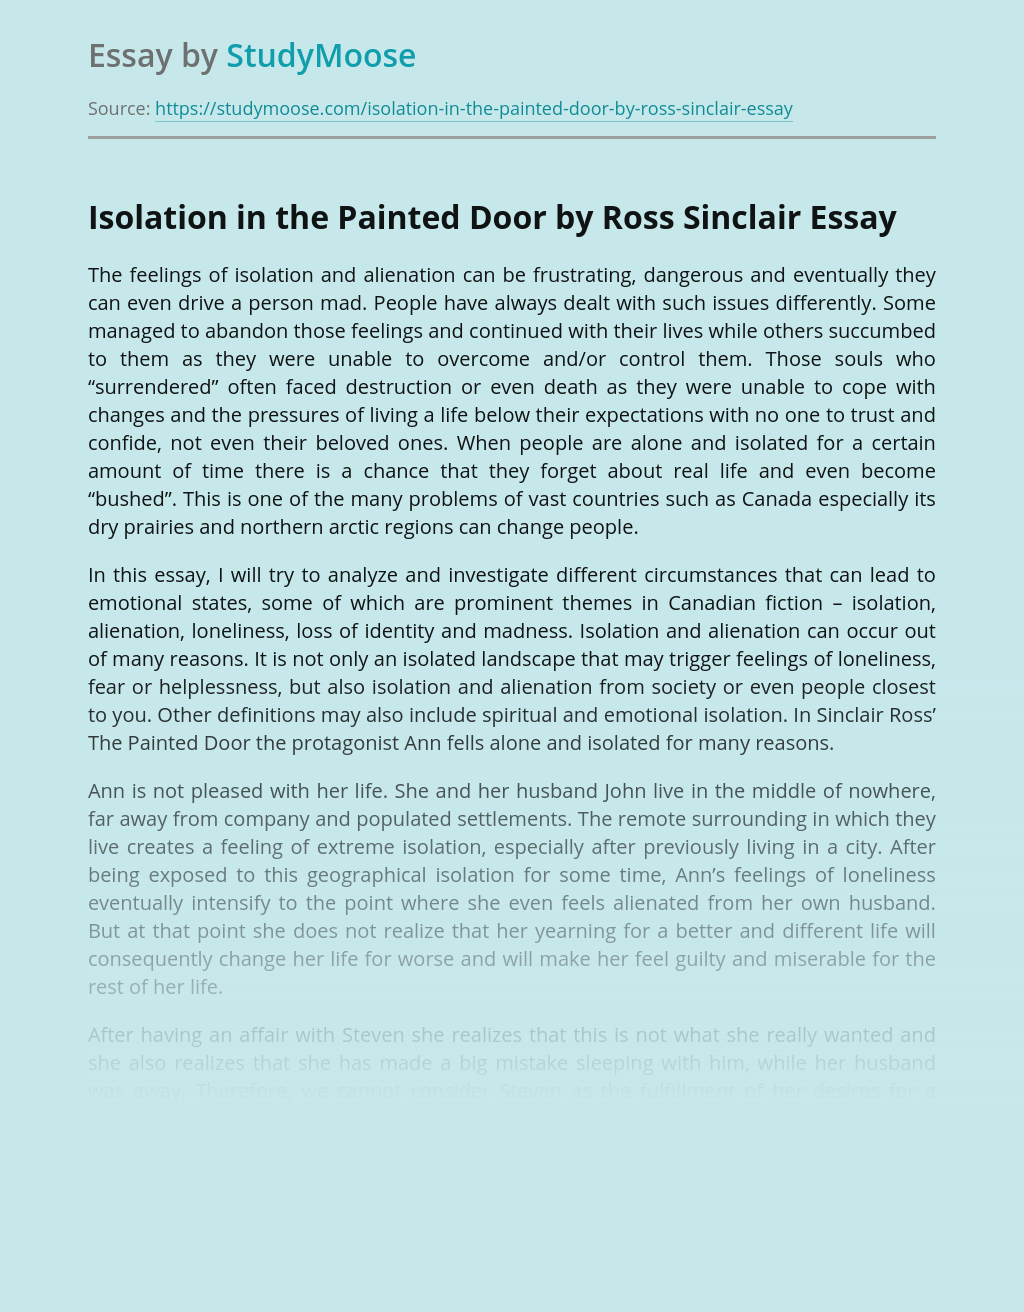 Isolation in the Painted Door by Ross Sinclair